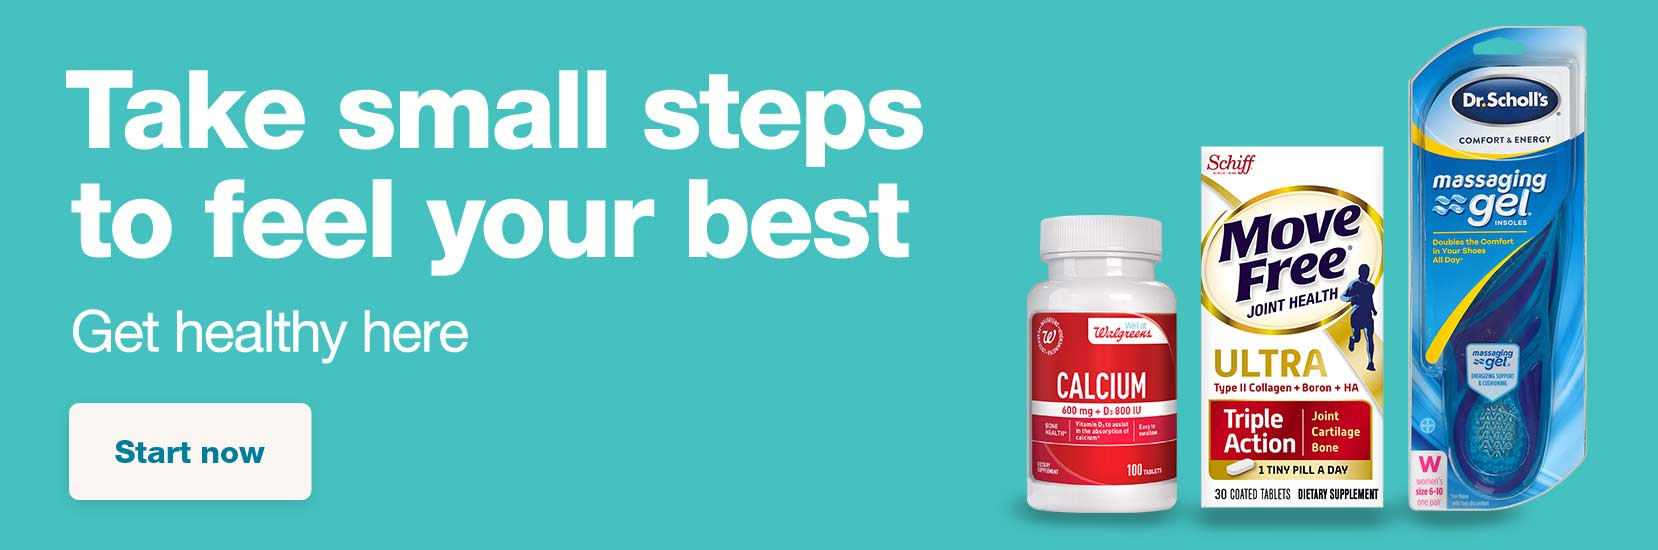 Take small steps to feel your best. Get healthy here. Start now.